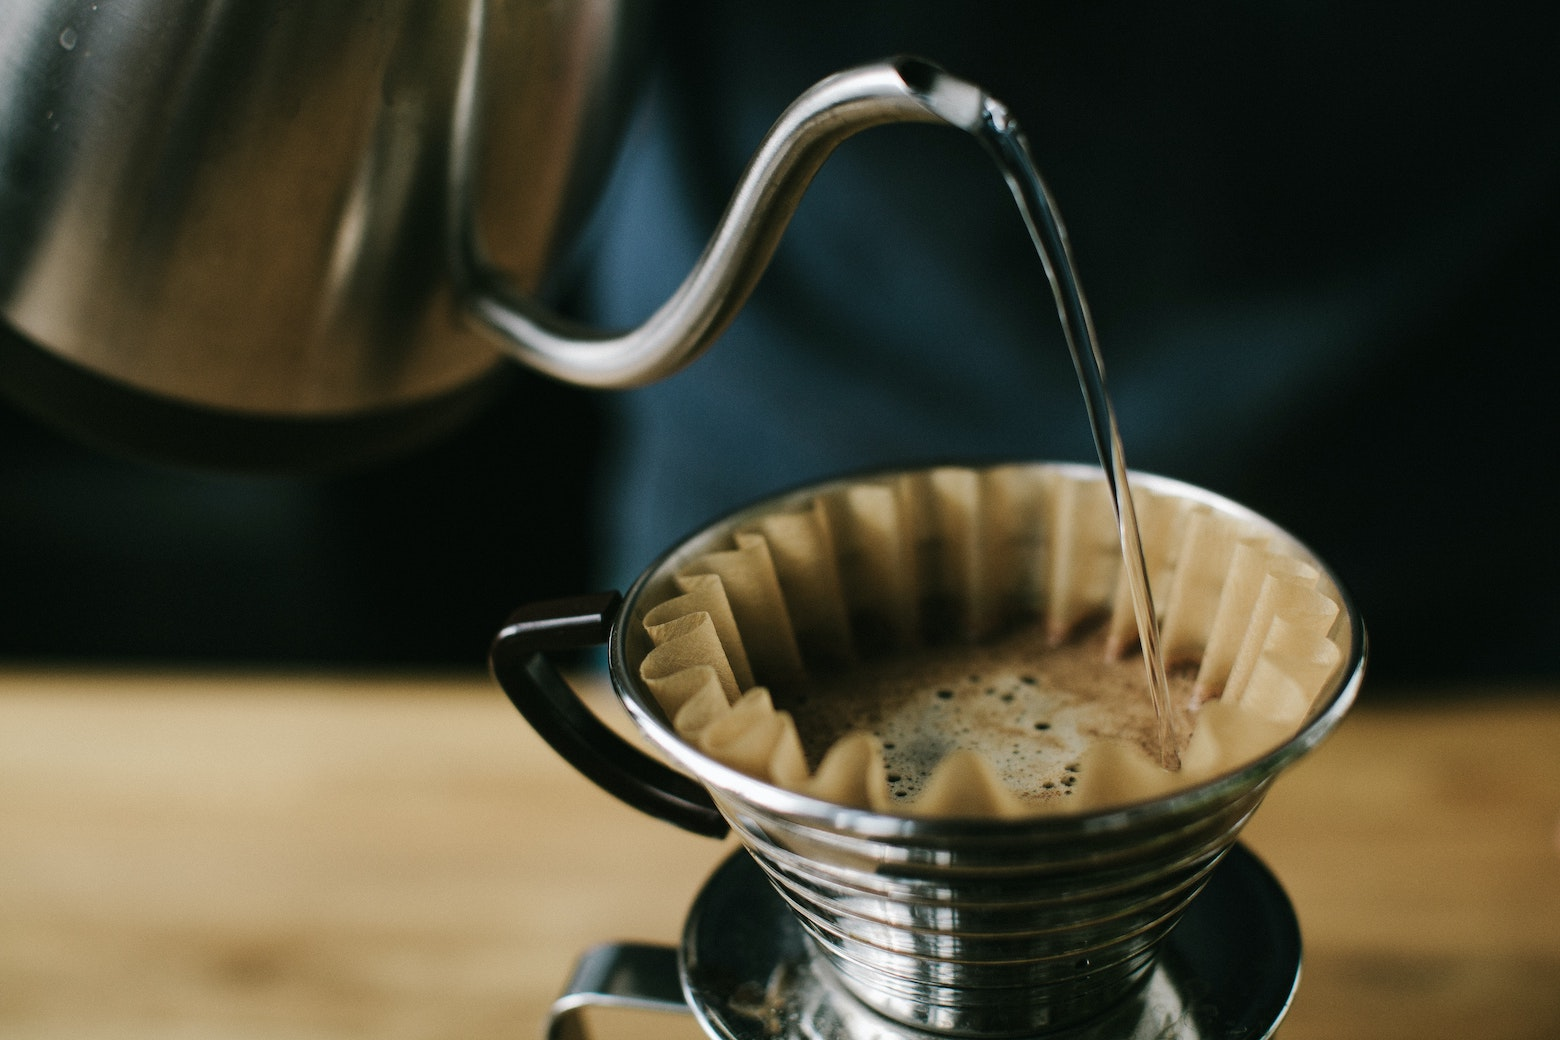 f-stop coffee brewing methods pour over